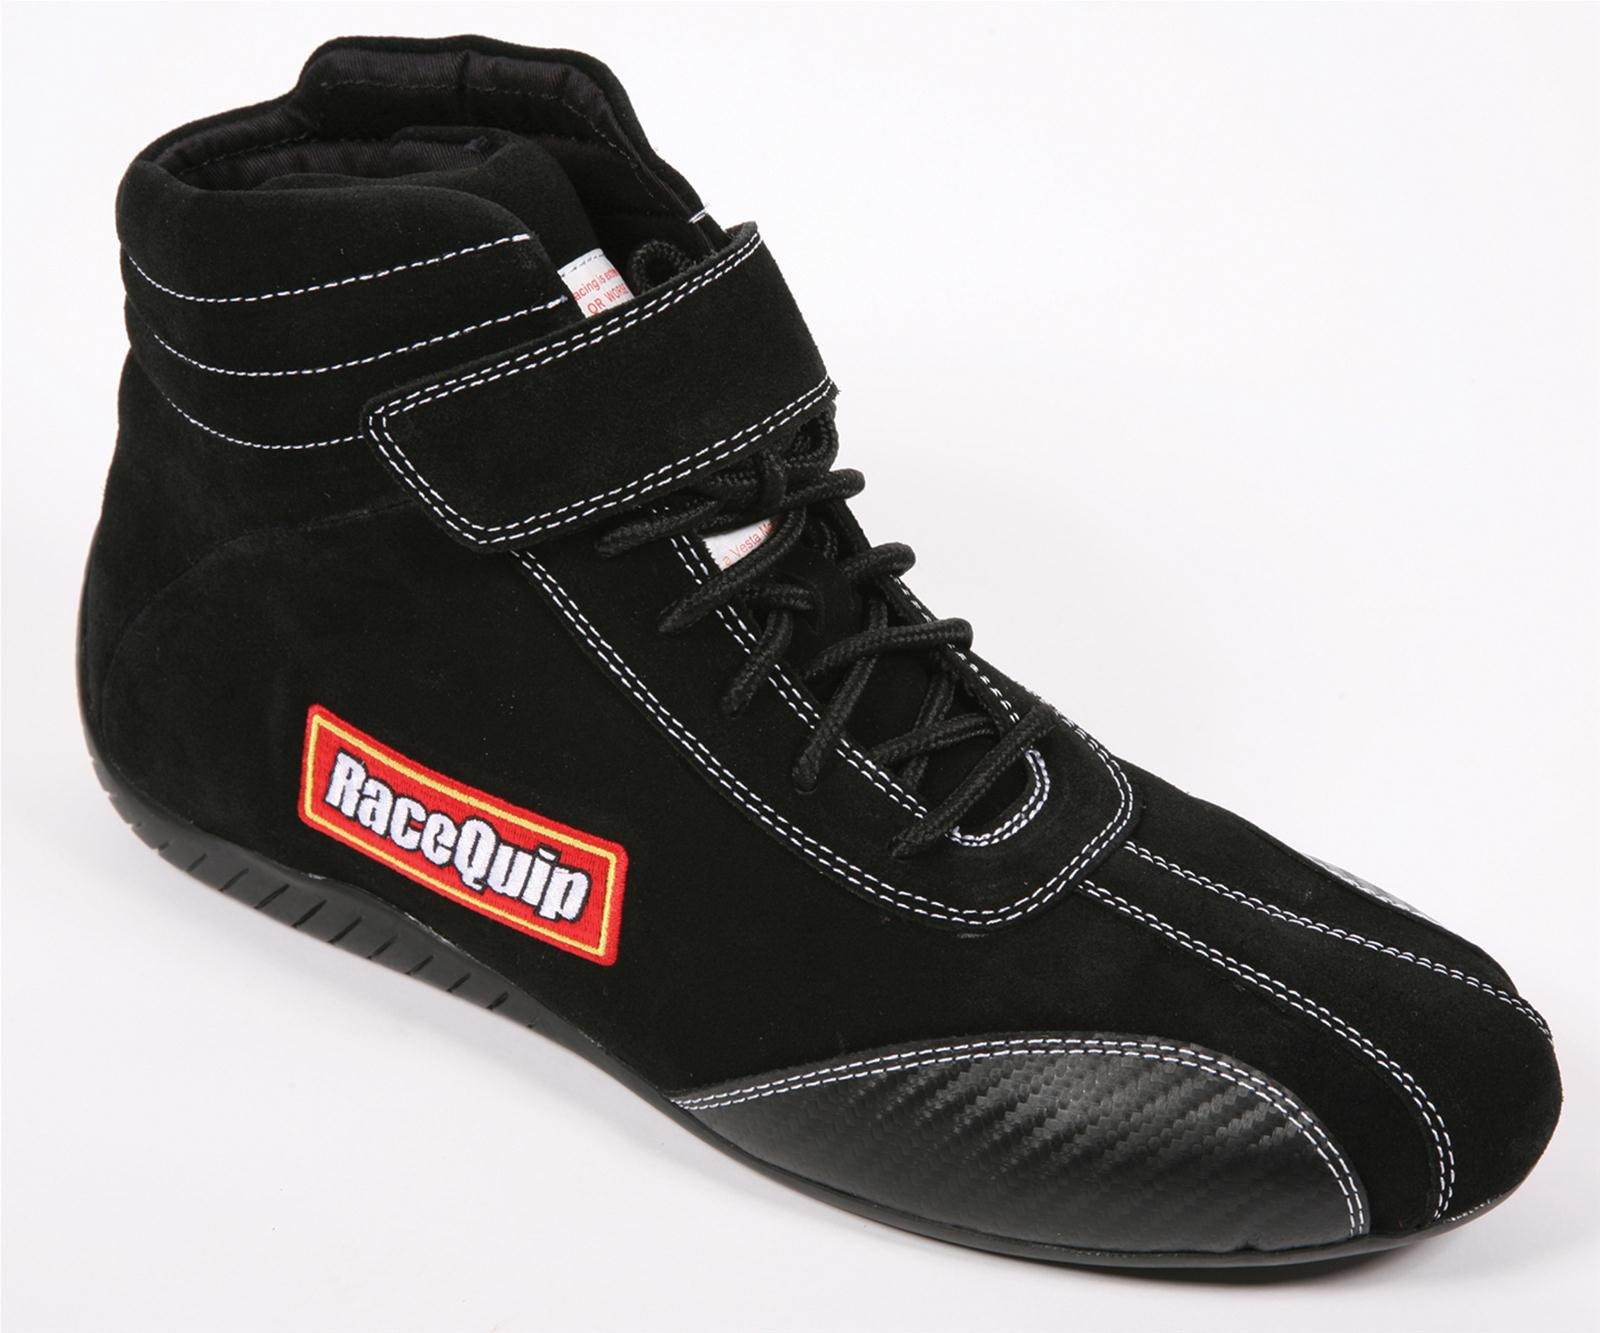 RaceQuip Euro Ankletop Racing Shoes Free Shipping on